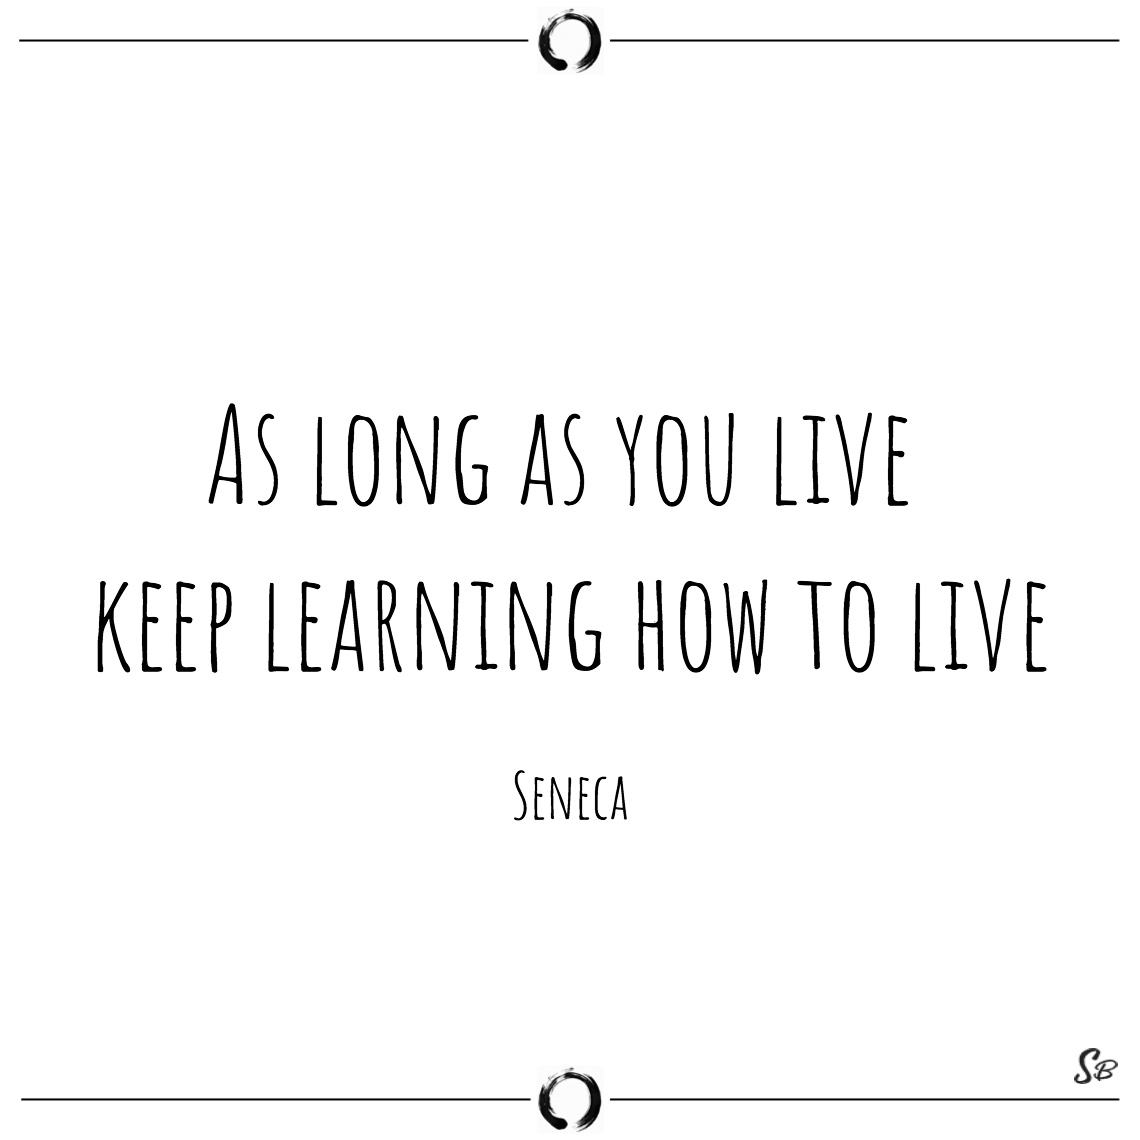 As long as you live keep learning how to live seneca